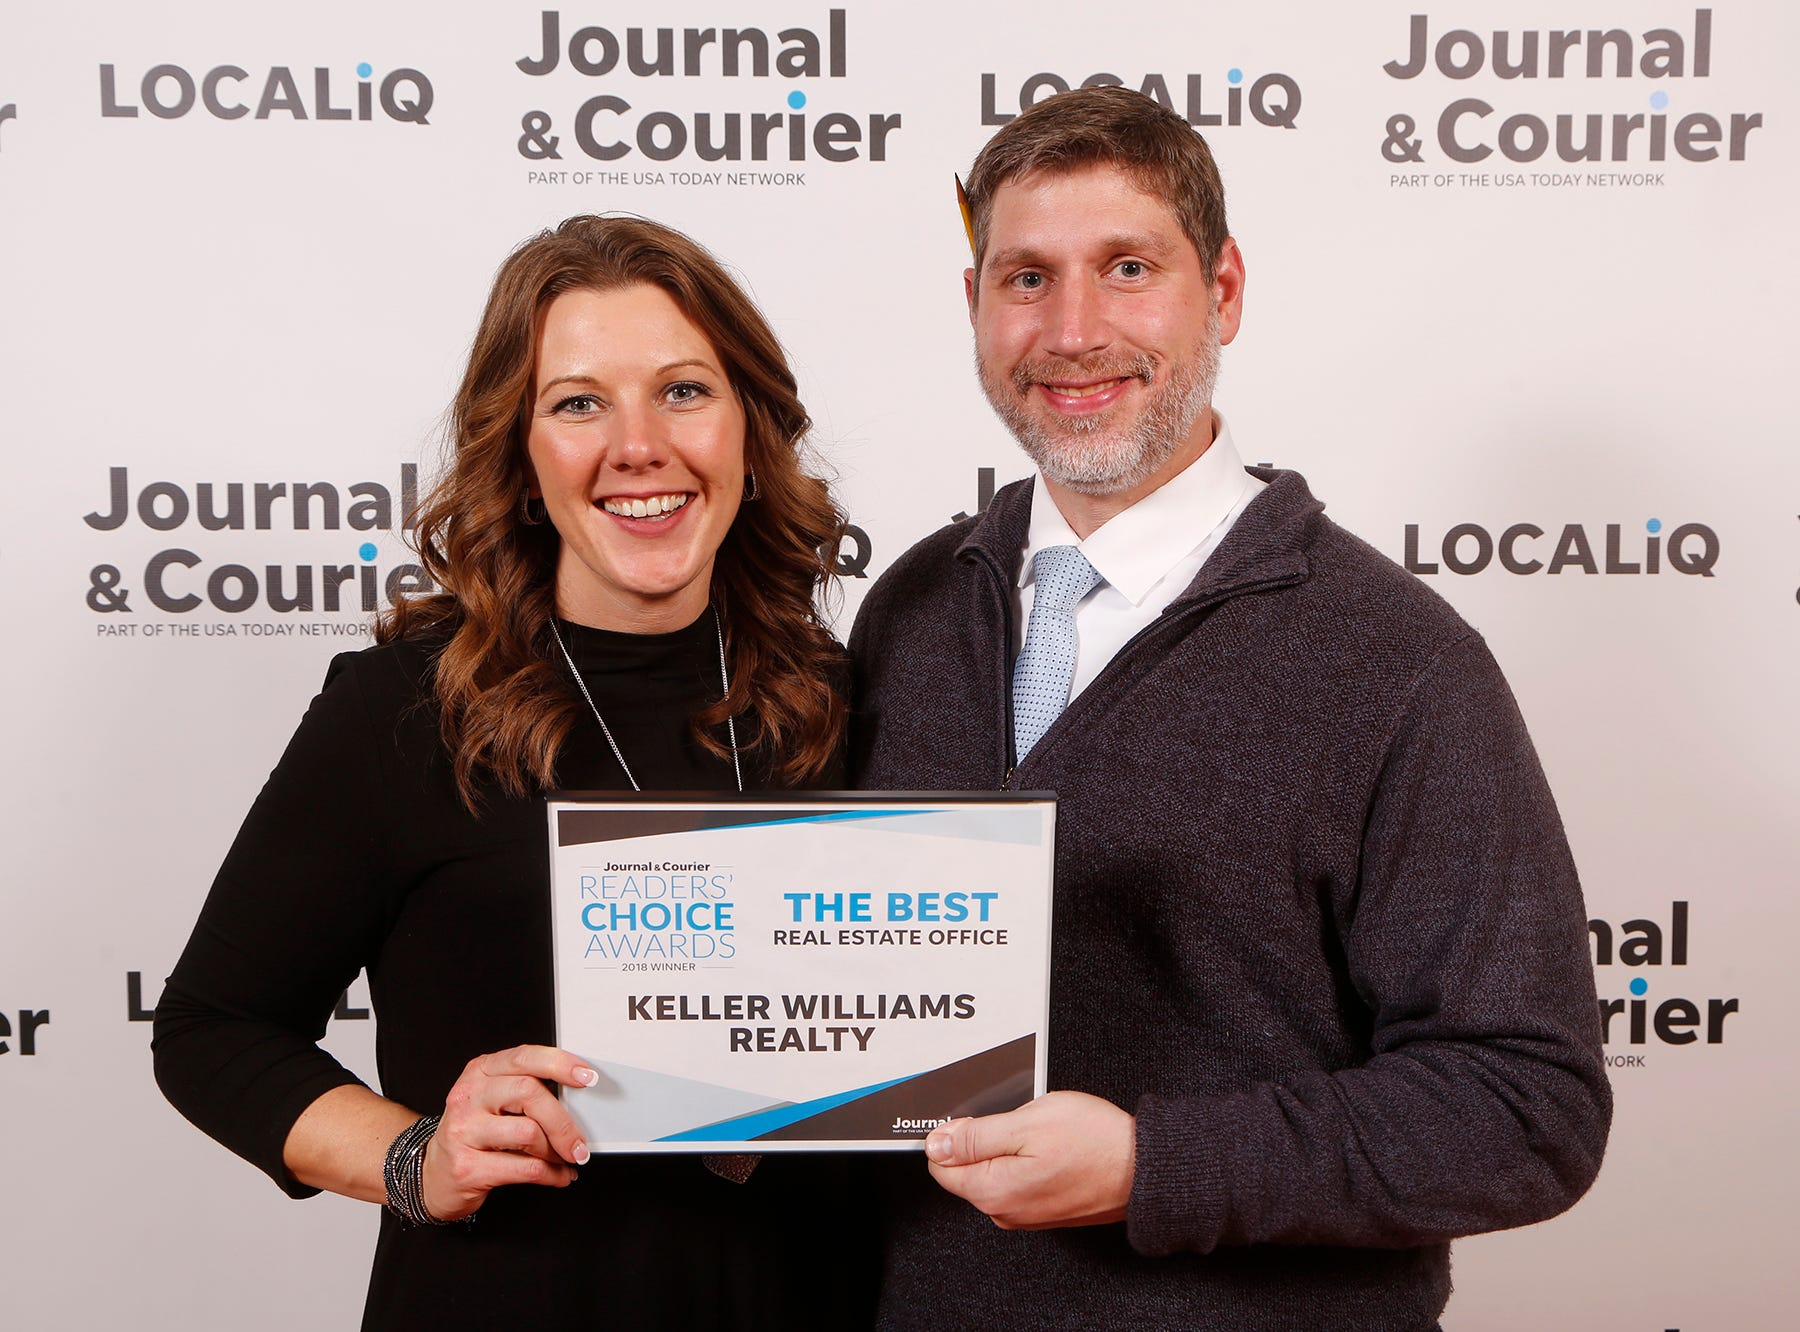 Keller Williams Realty, Journal & Courier Readers' Choice Awards winner for the best real estate office.